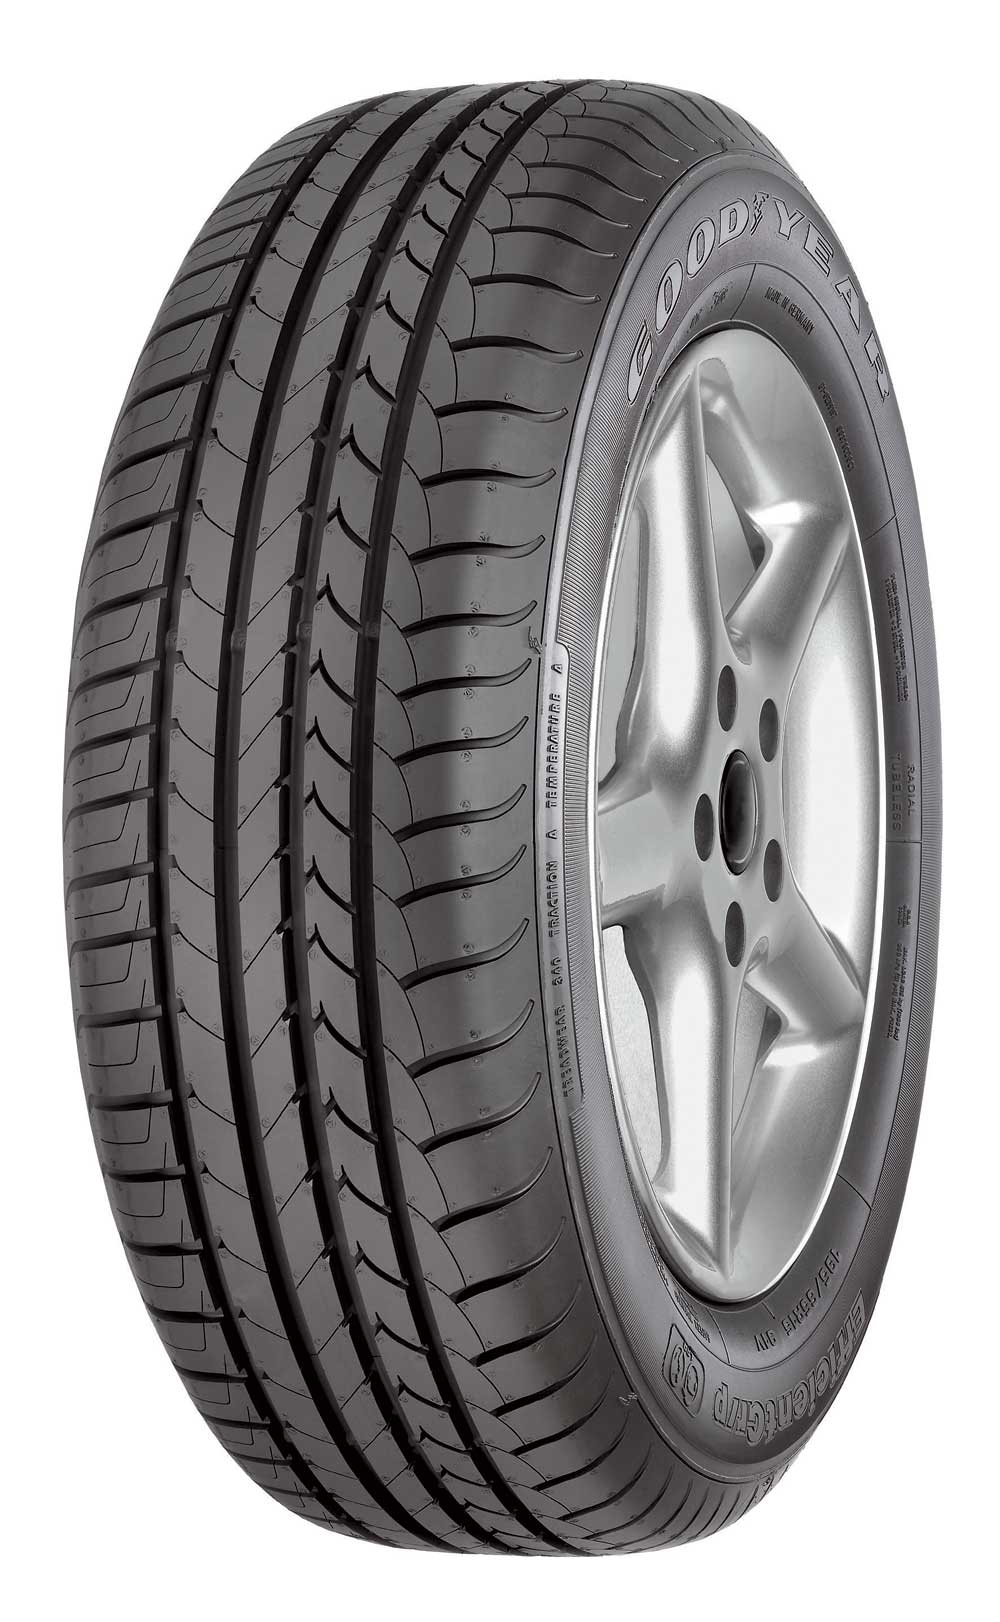 205/55 R16 [91] H EFFICIENTGRIP - GOODYEAR